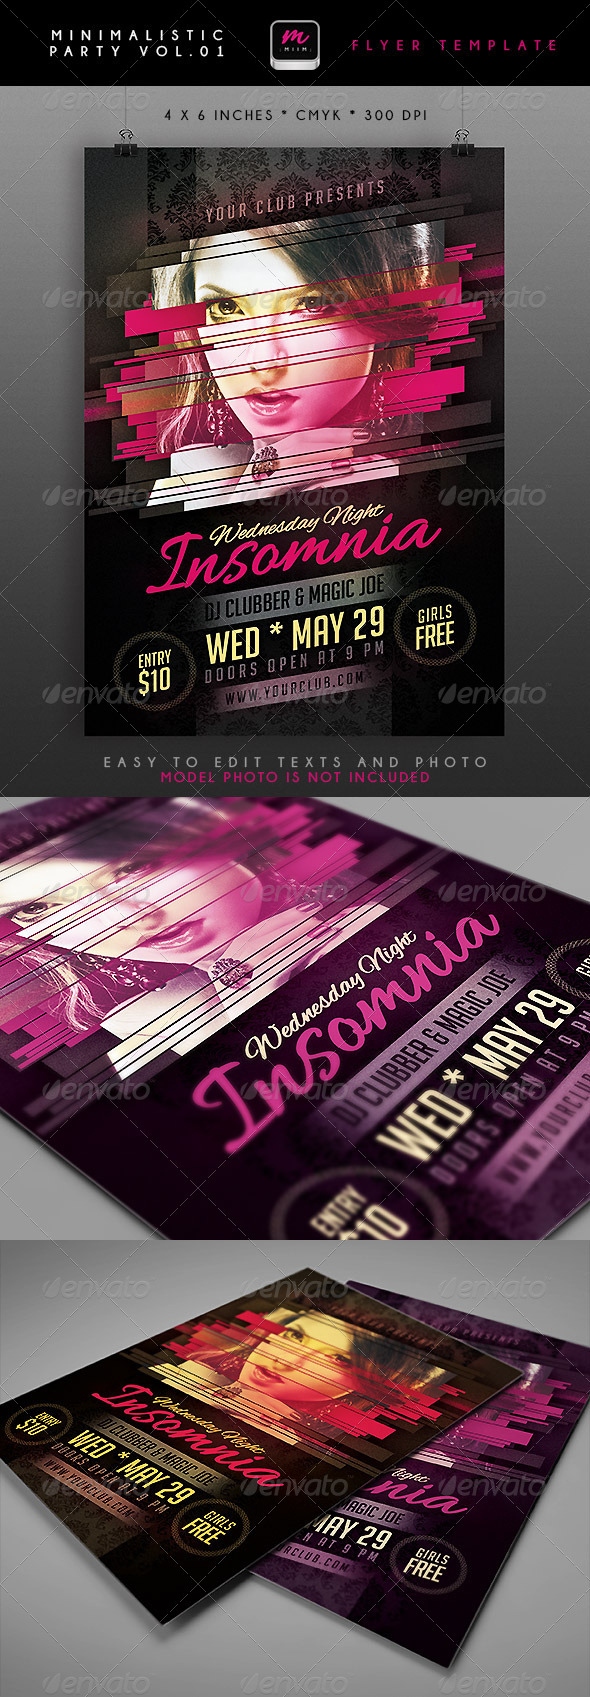 GraphicRiver Minimalistic Party Flyer 1 4690918